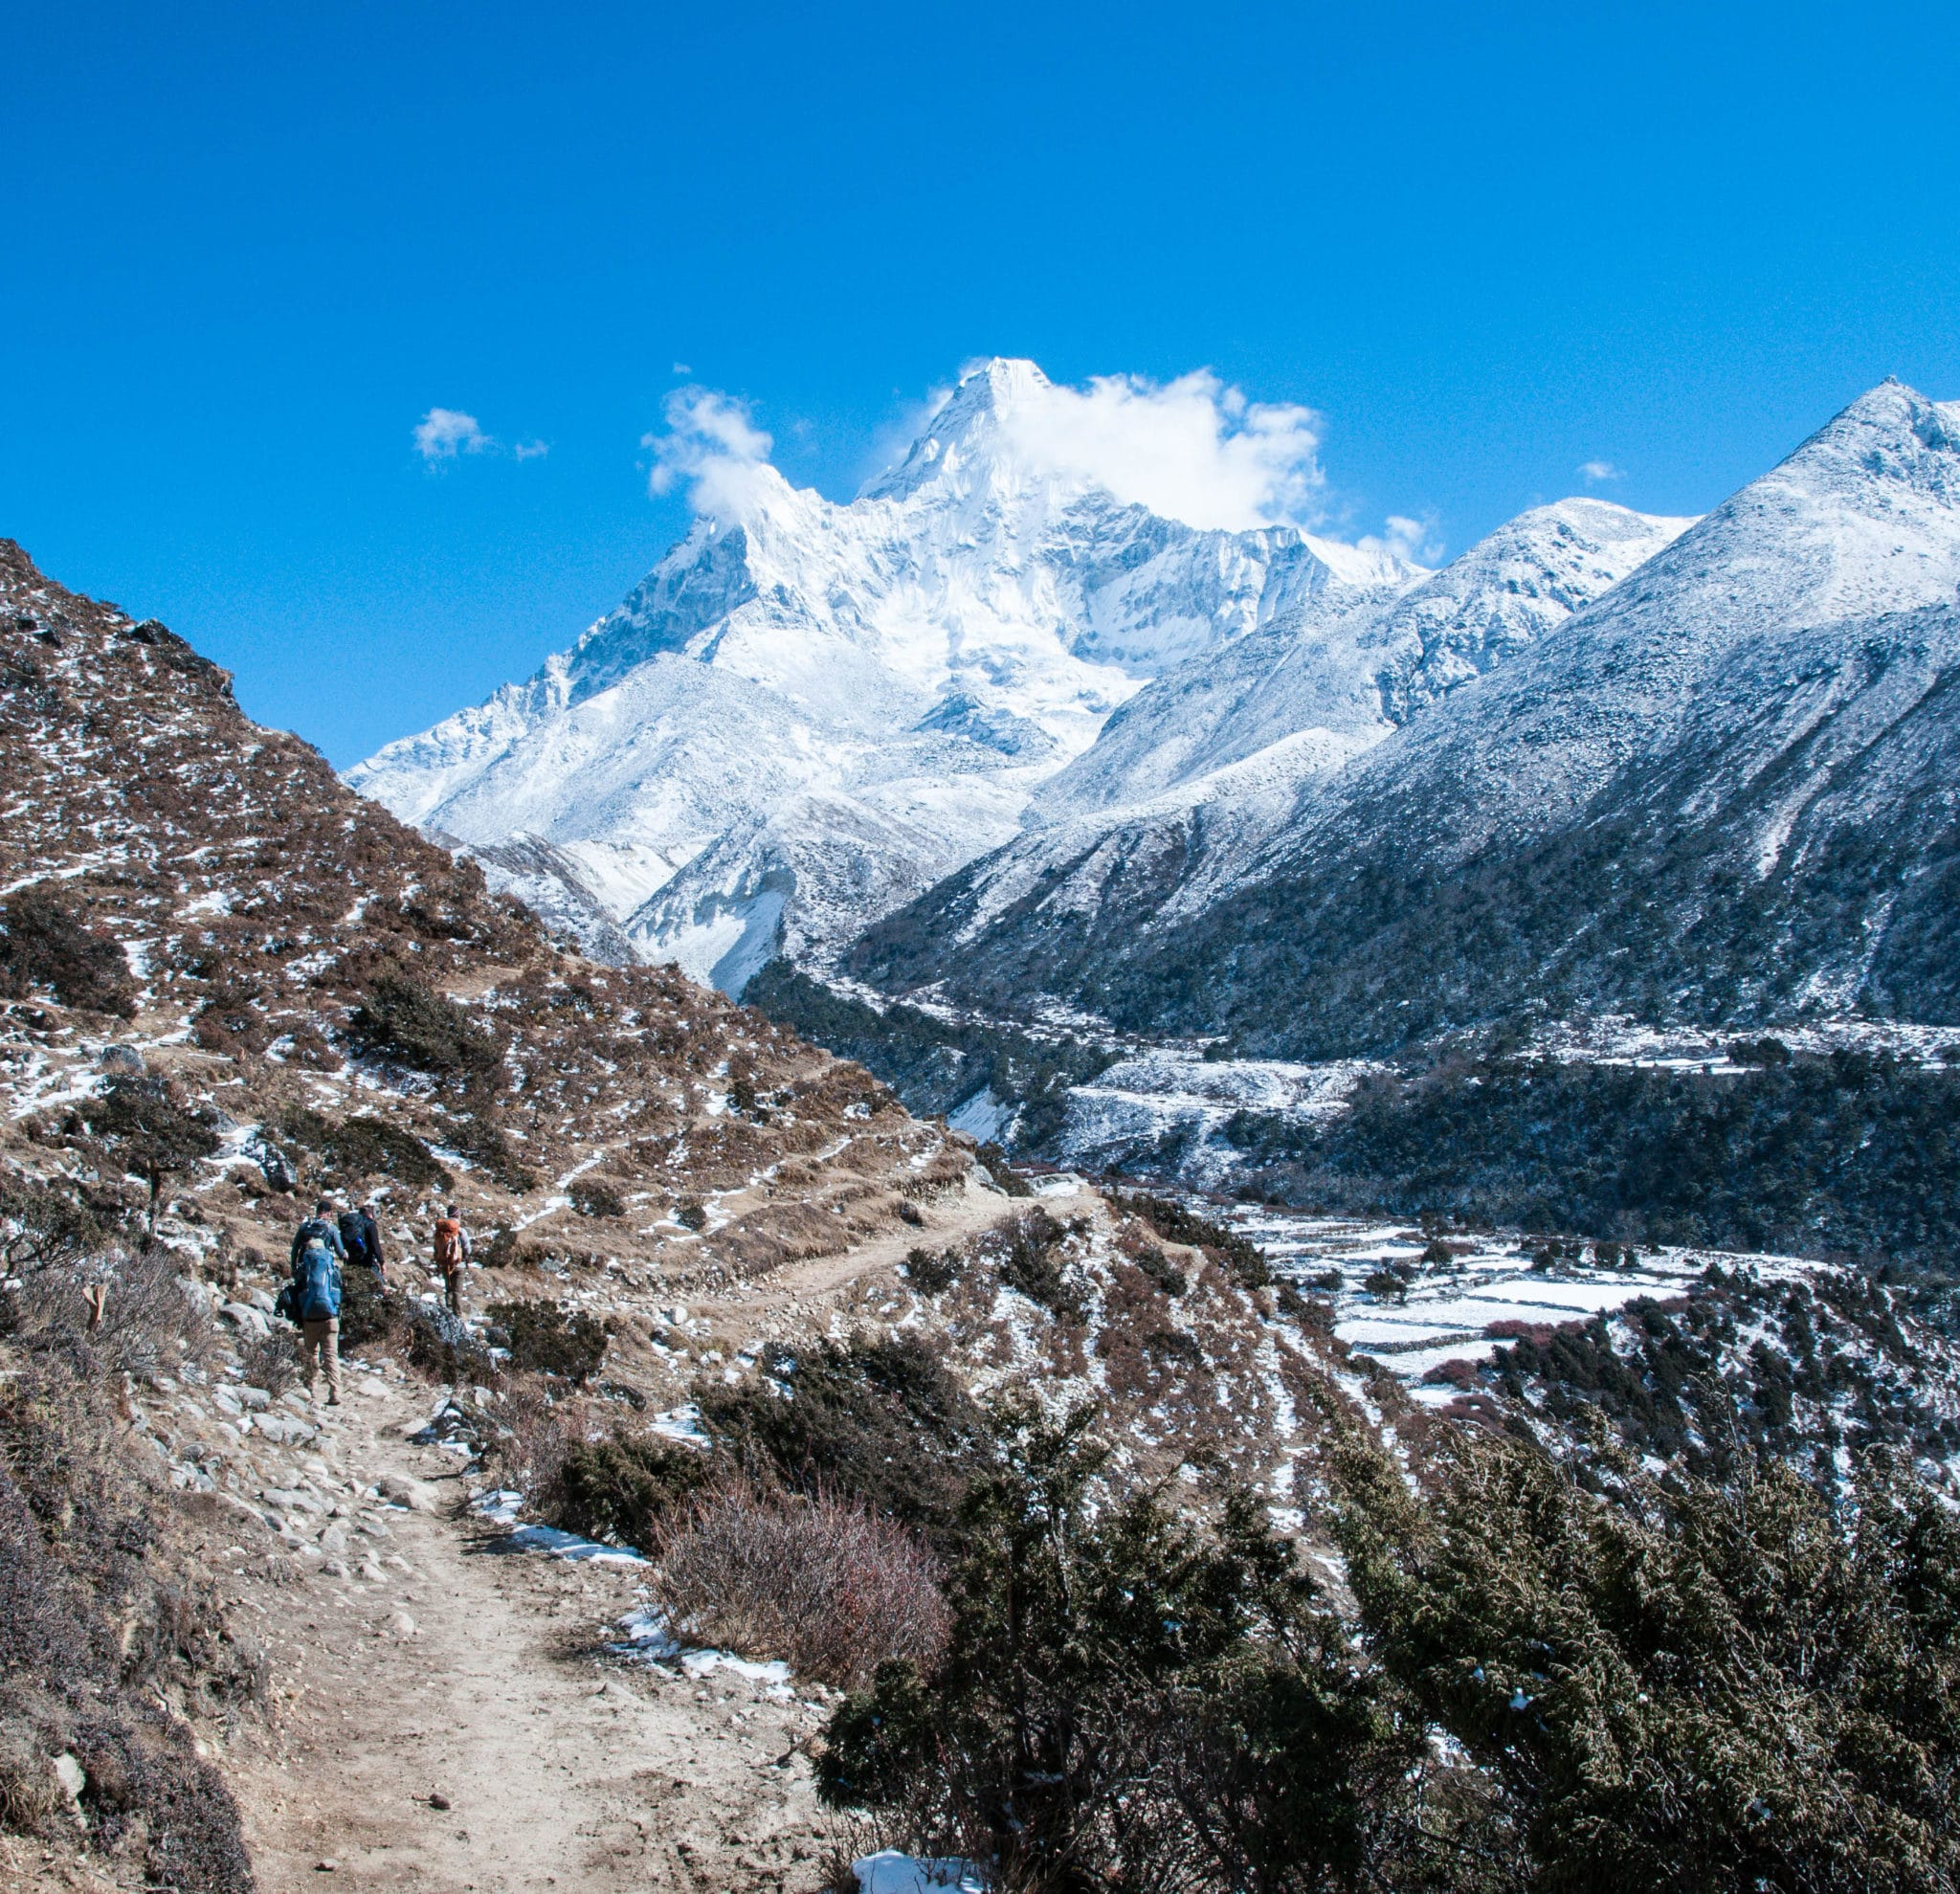 On the way to Pangboche